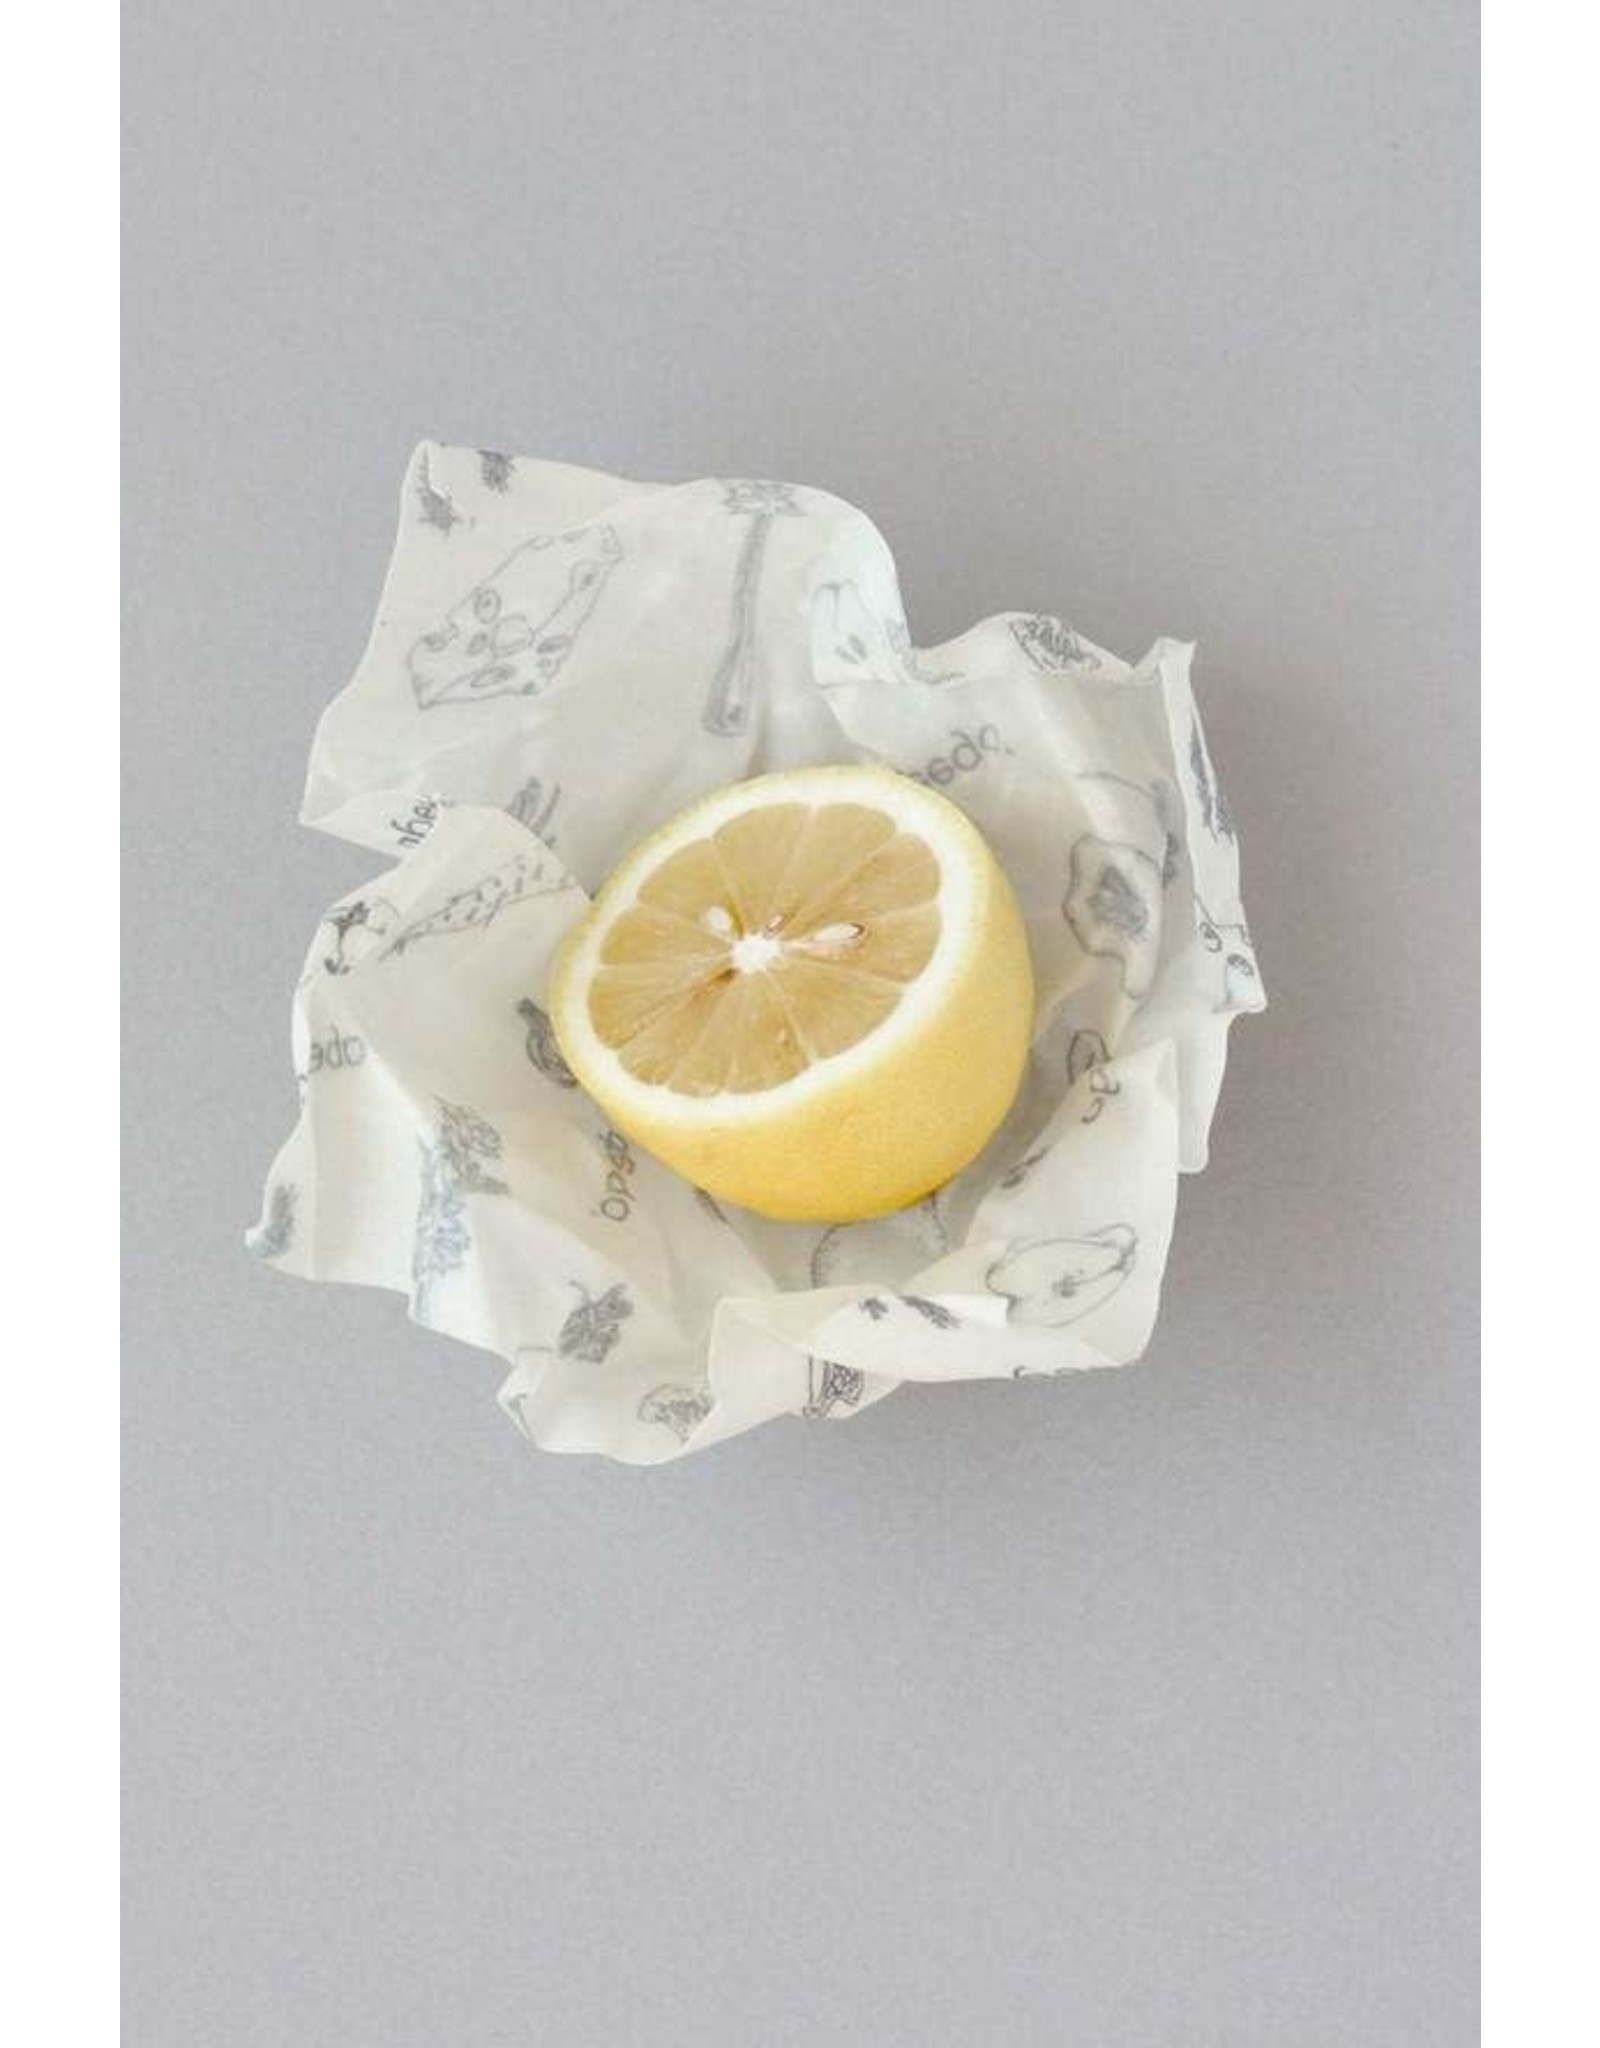 Abeego The Reusable Beeswax Food Wrap - Small